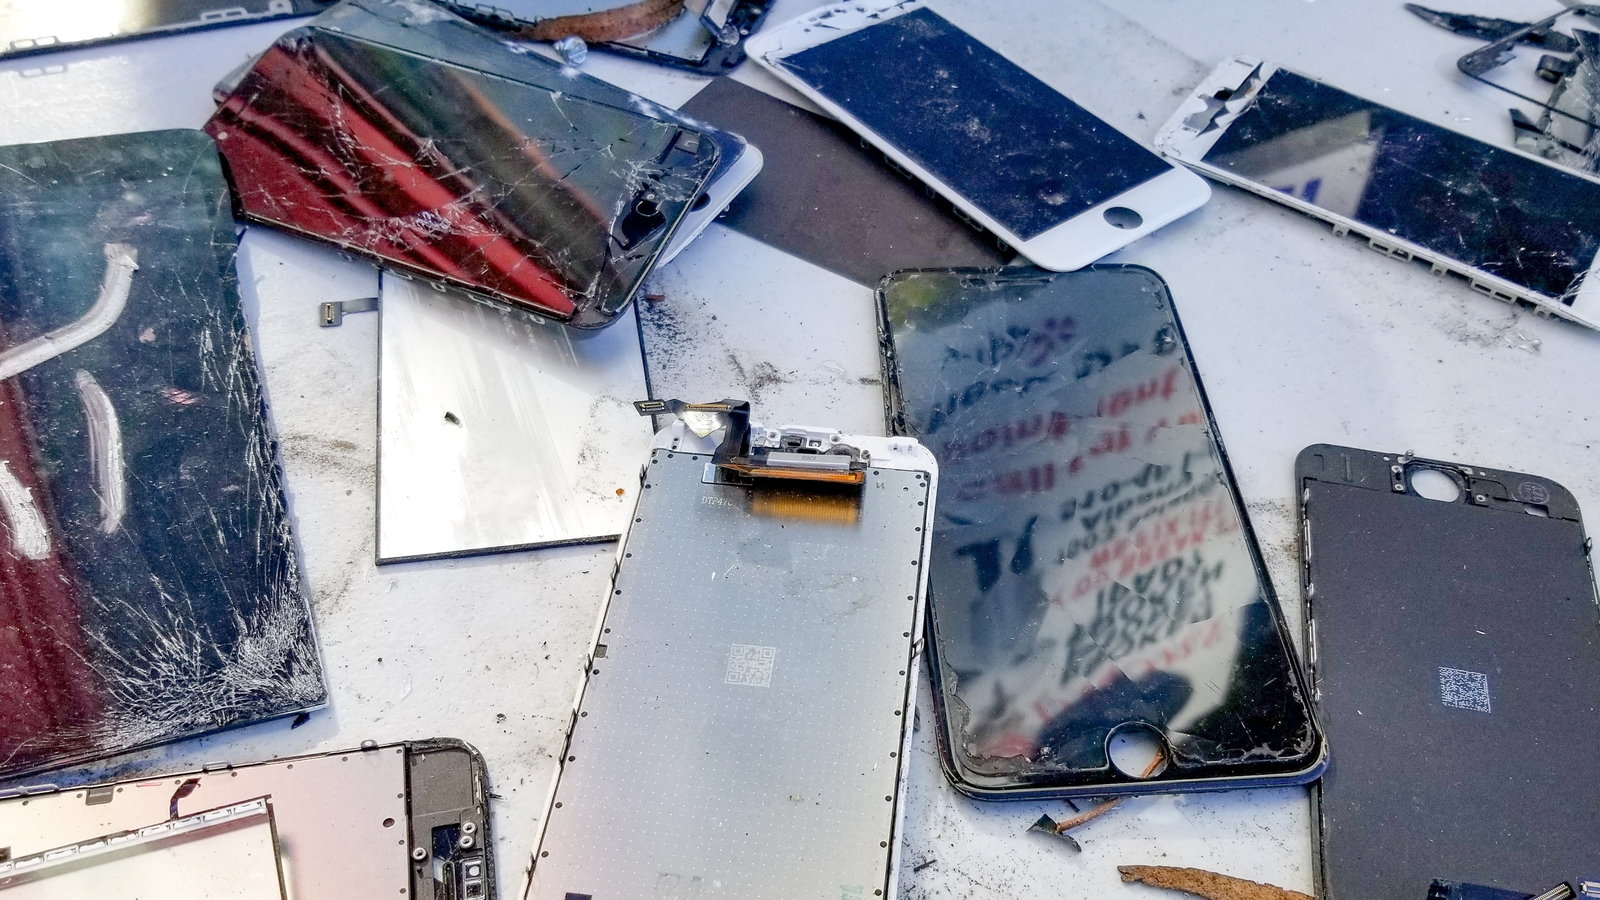 Apple To Sell Iphone Parts To Independent Repair Shops